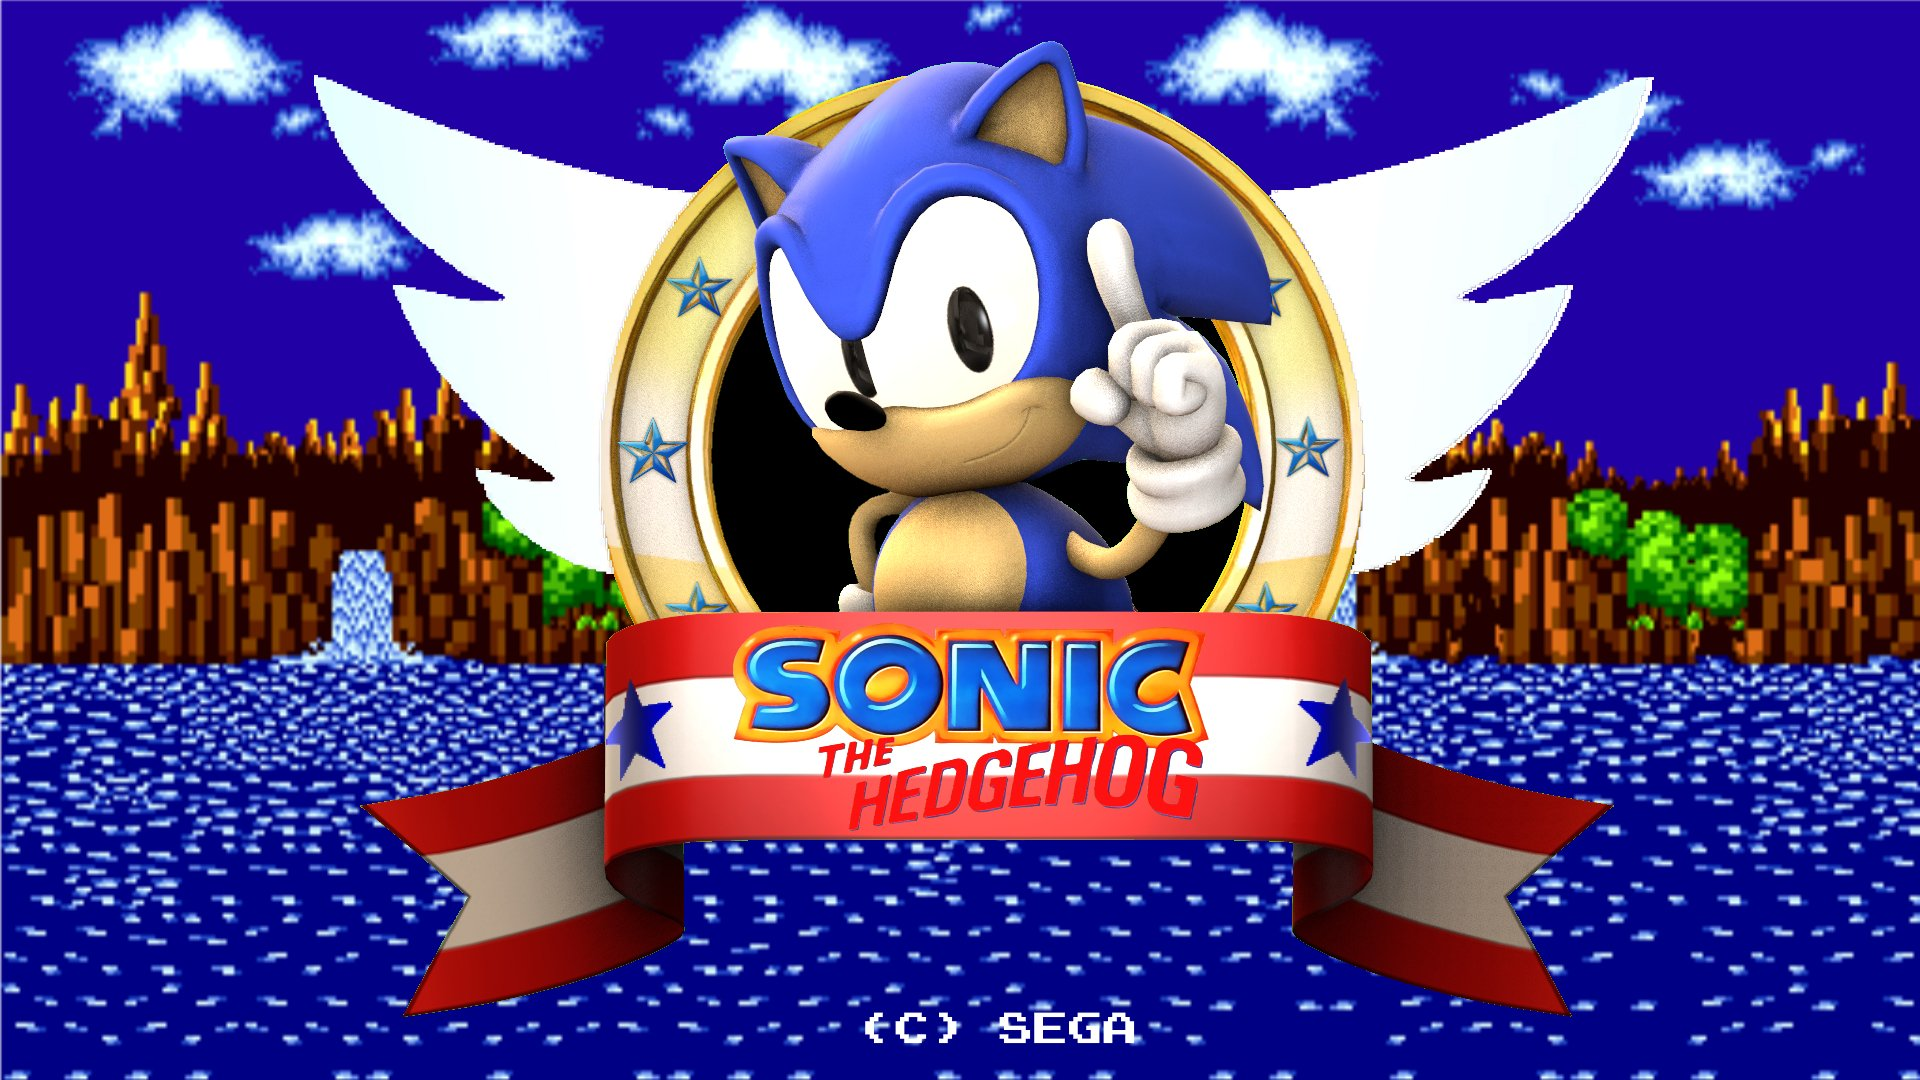 1 Sonic The Hedgehog Genesis Hd Wallpapers Background Images Wallpaper Abyss